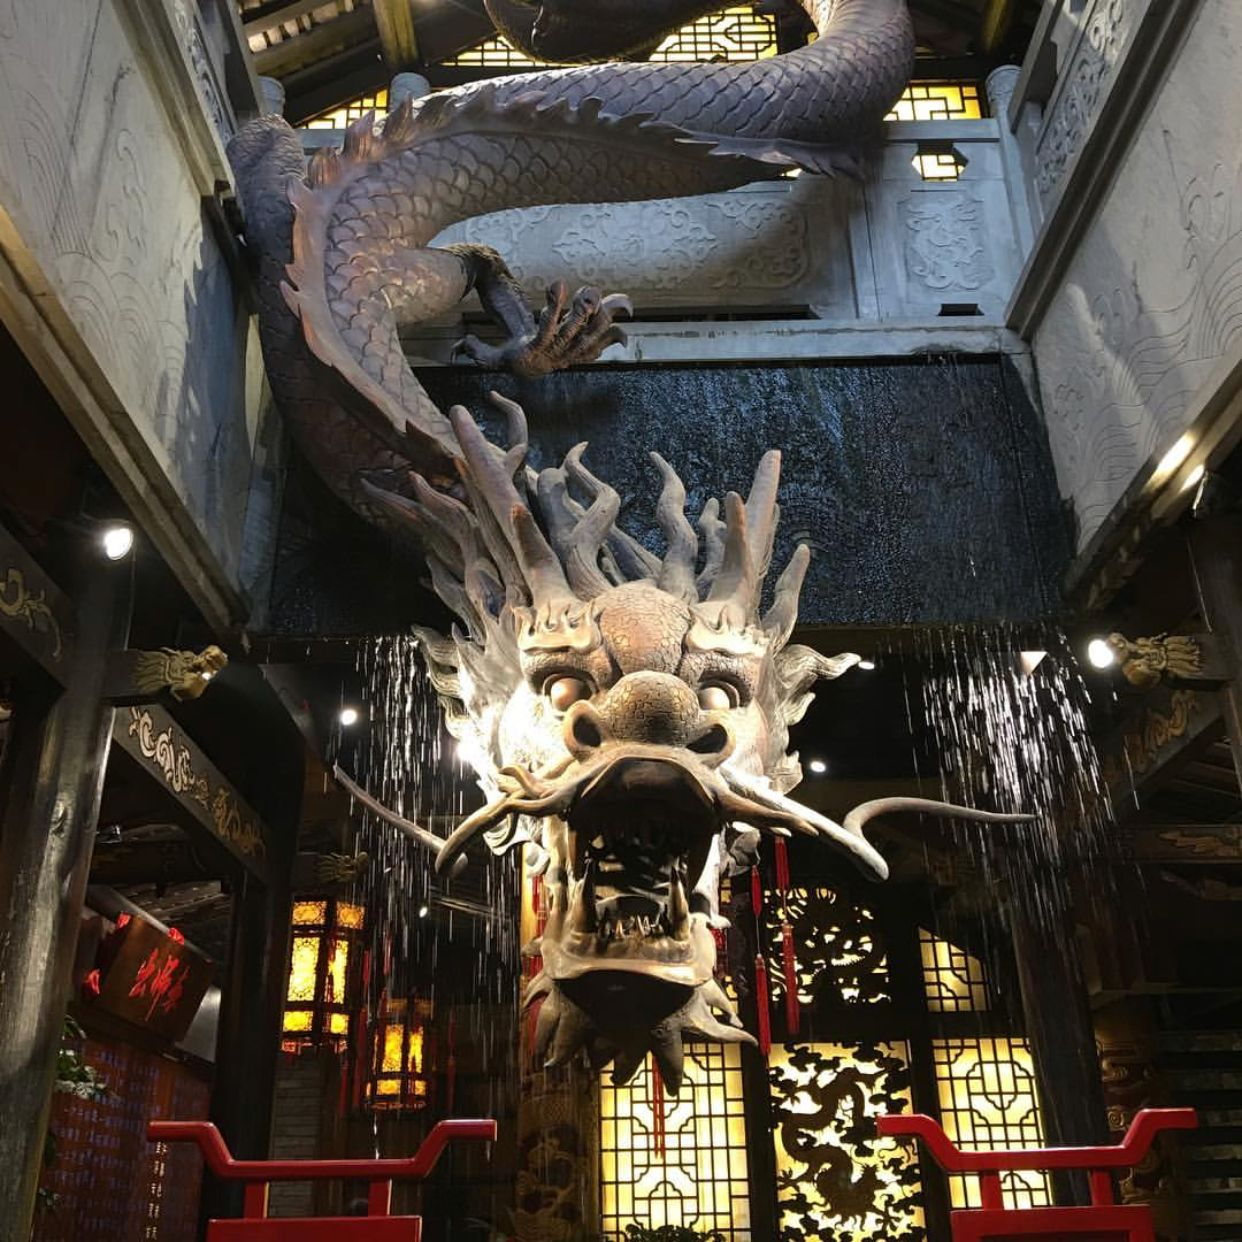 A restaurant chengdu sichuan china with images